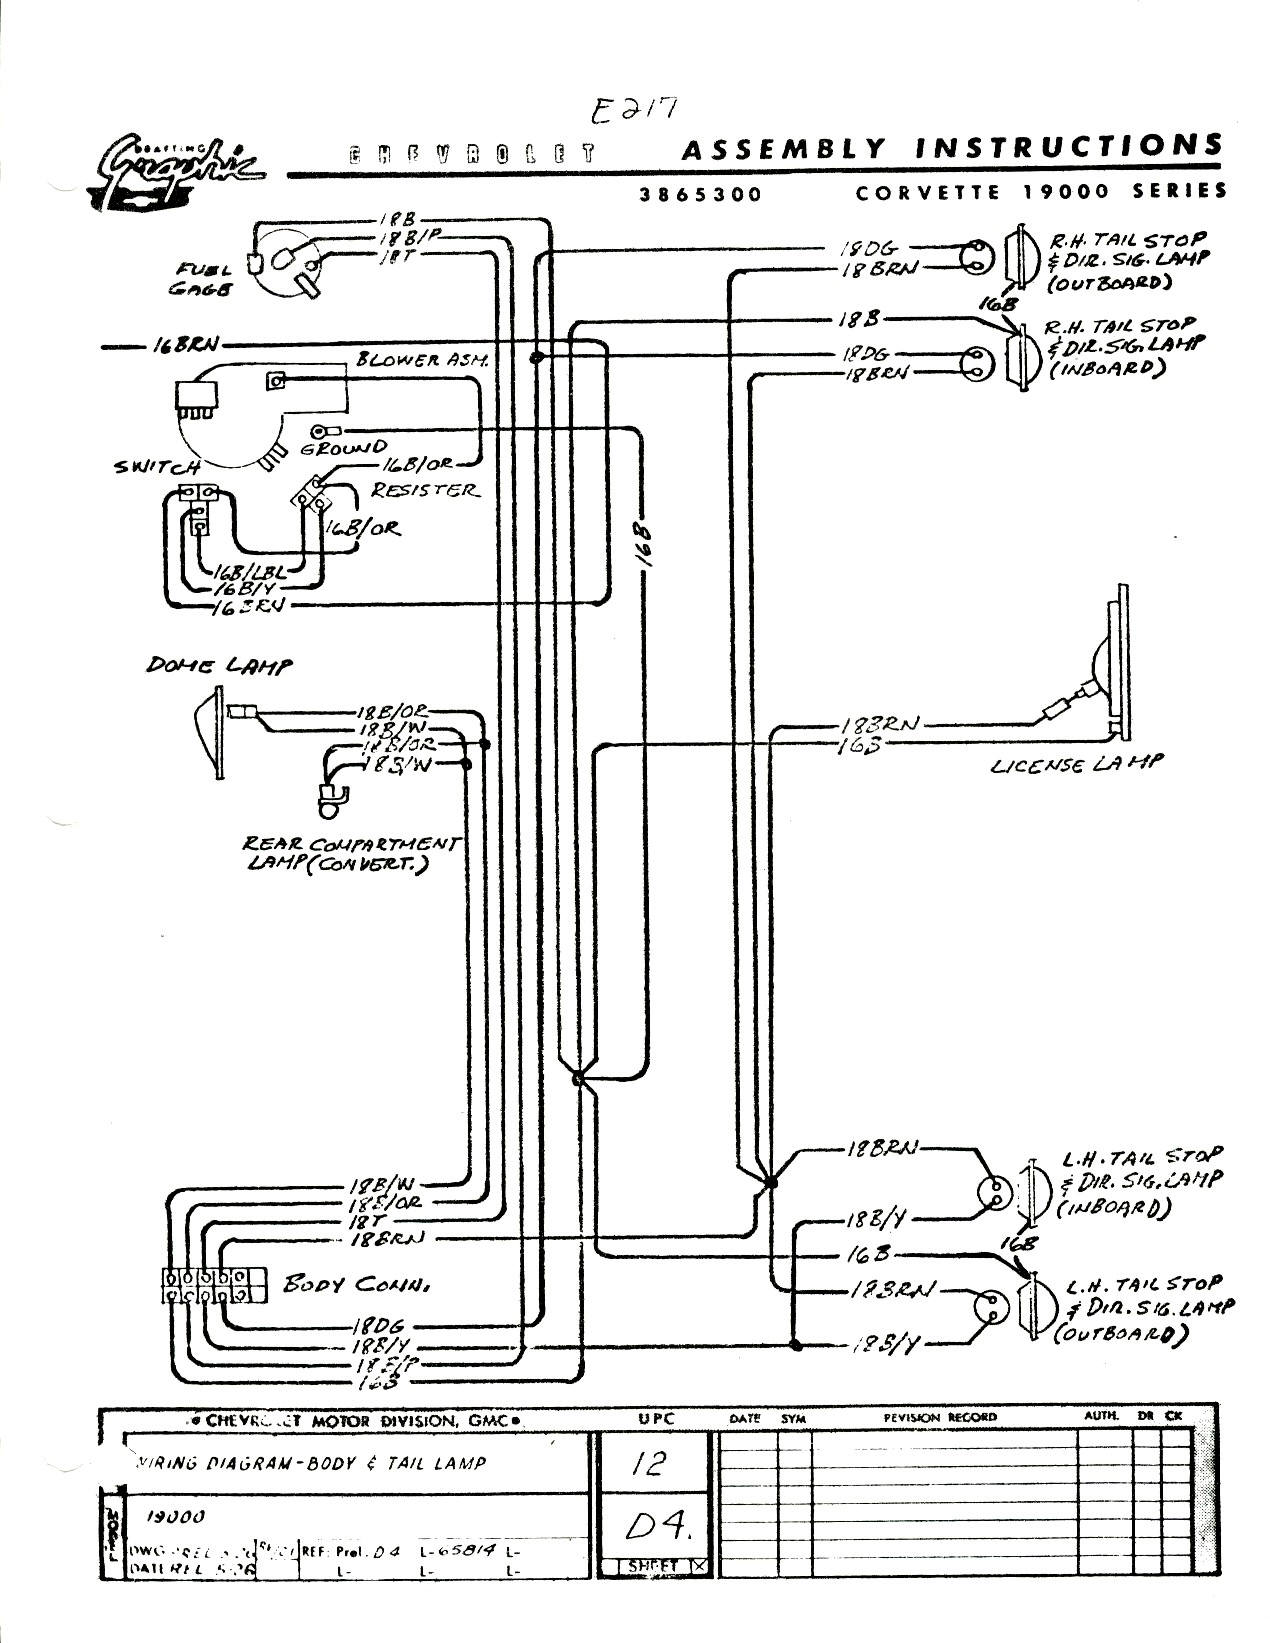 Wiring Diagram For 74 Corvette, Wiring, Get Free Image